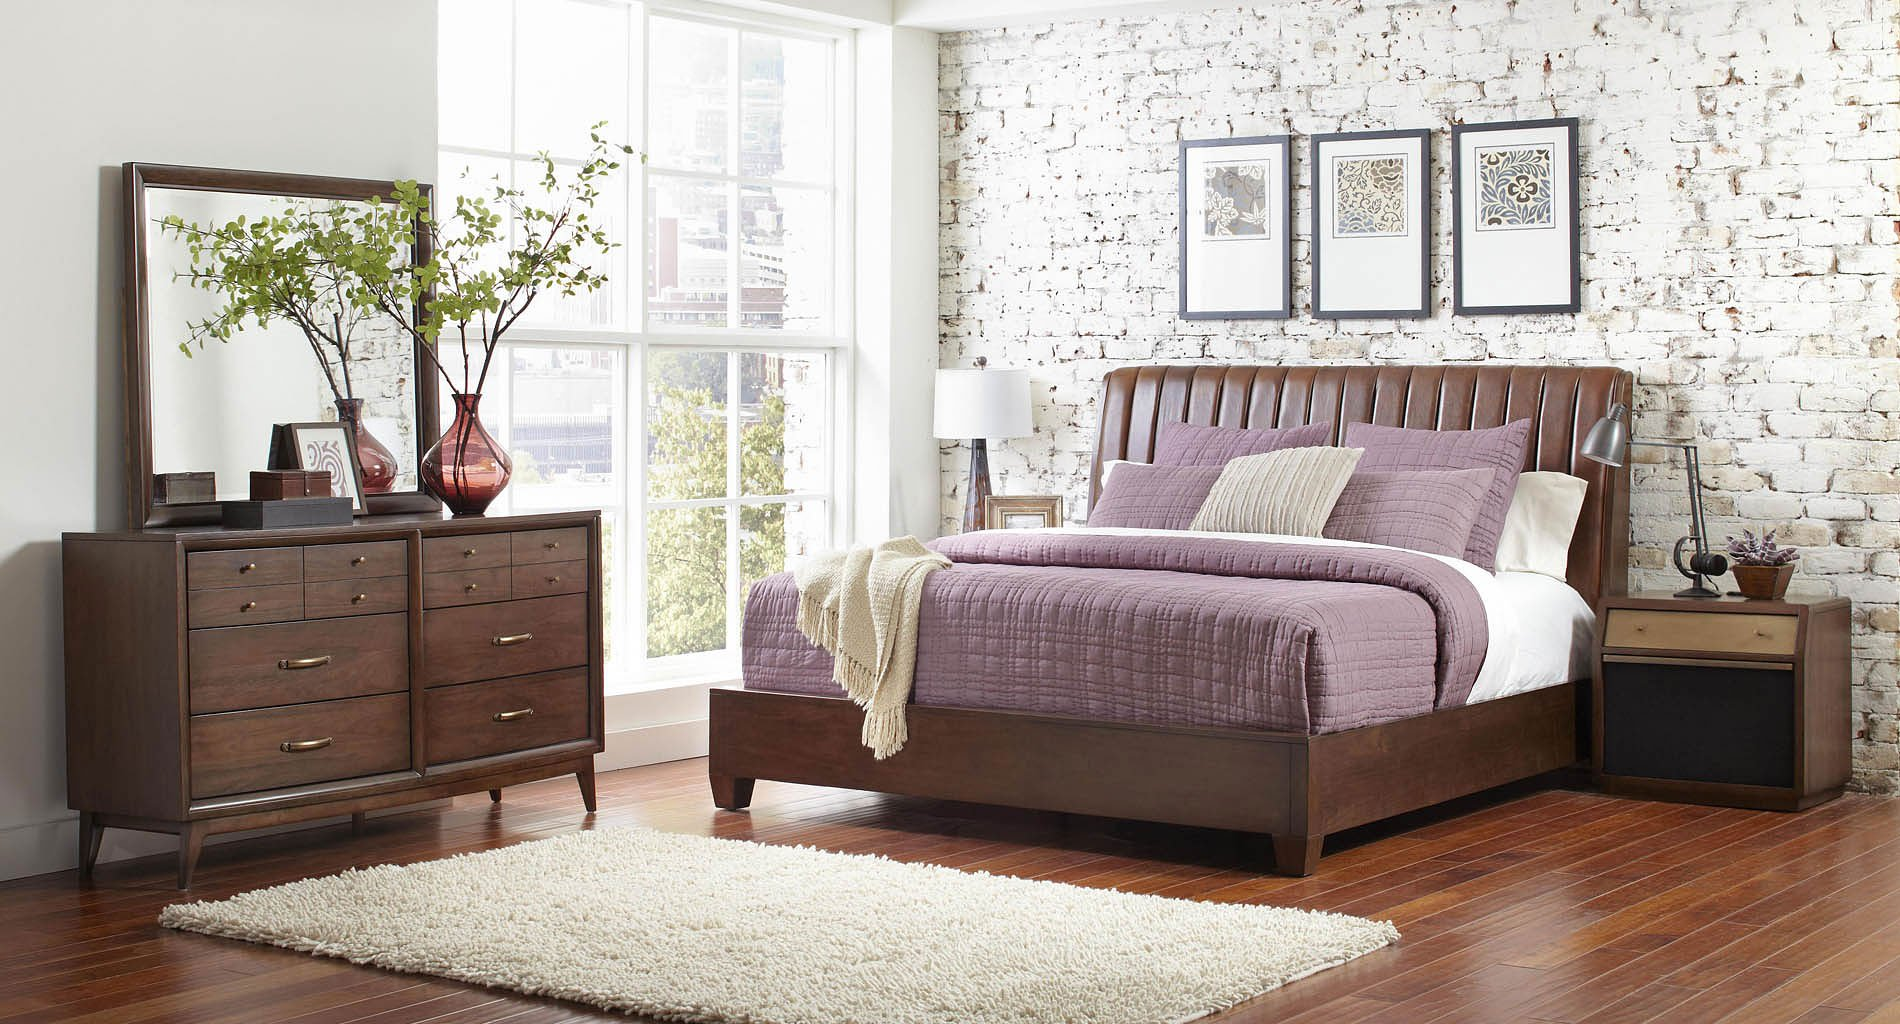 ... Pulaski Furniture San Mateo 4 Pc Sleigh Bedroom Set Pulaski ...